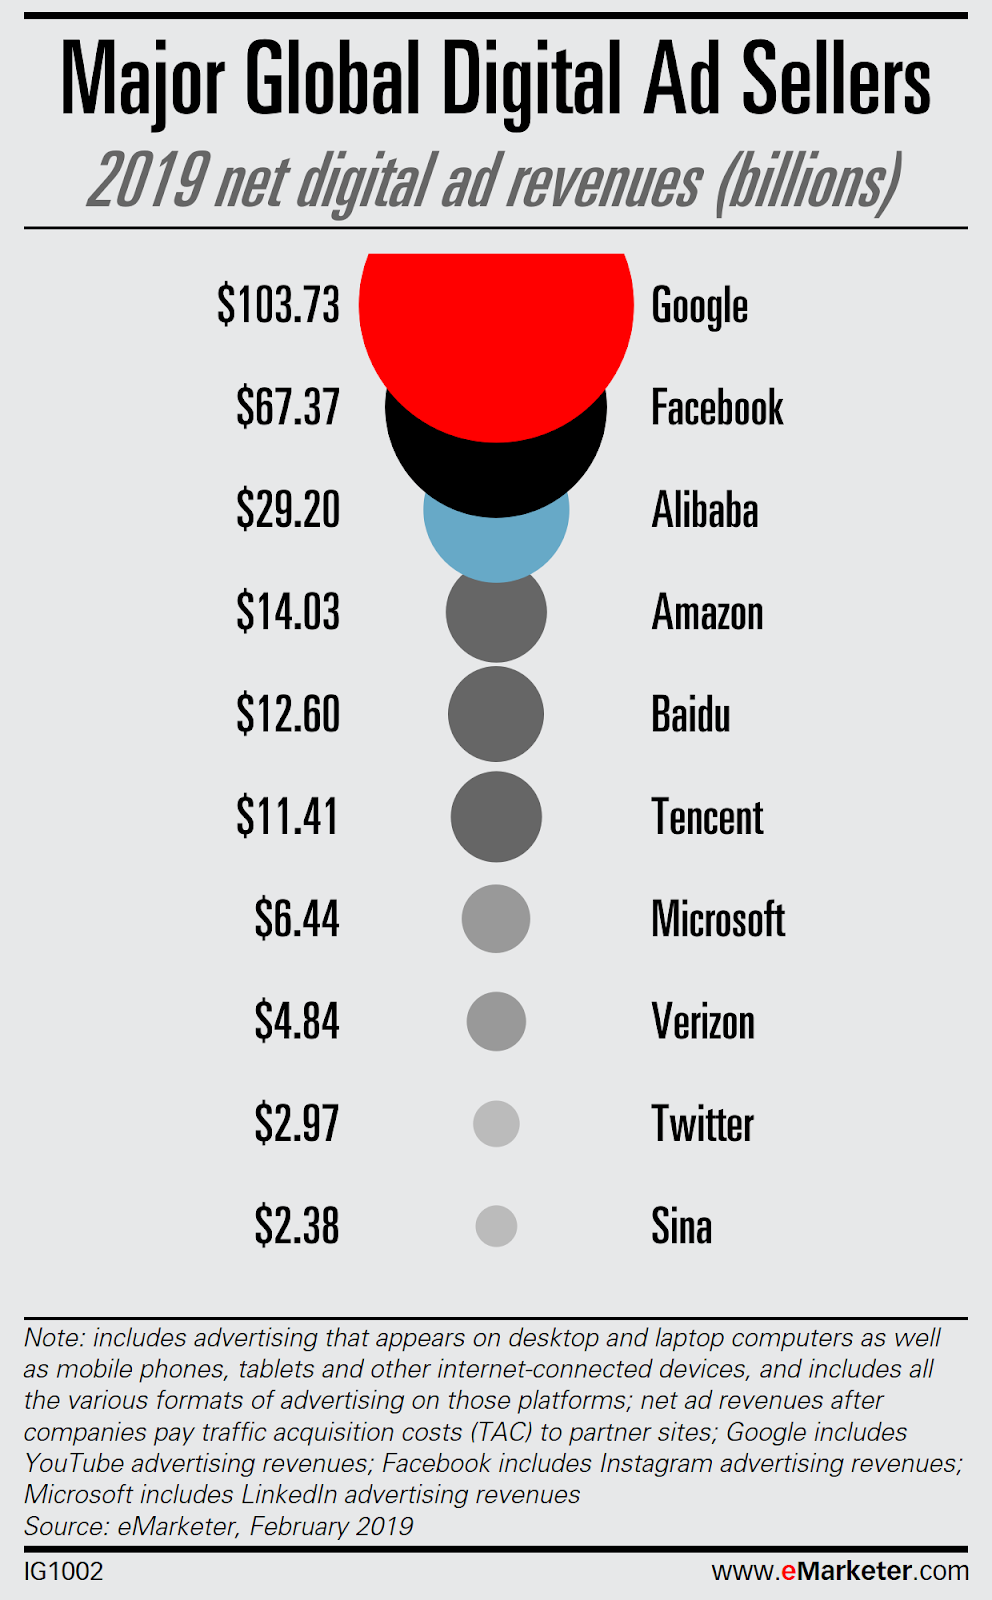 Major Global Digital Ad Sellers info graphic : Google $103.73bn; Facebook $67.37bn; Alibaba $29.20bn